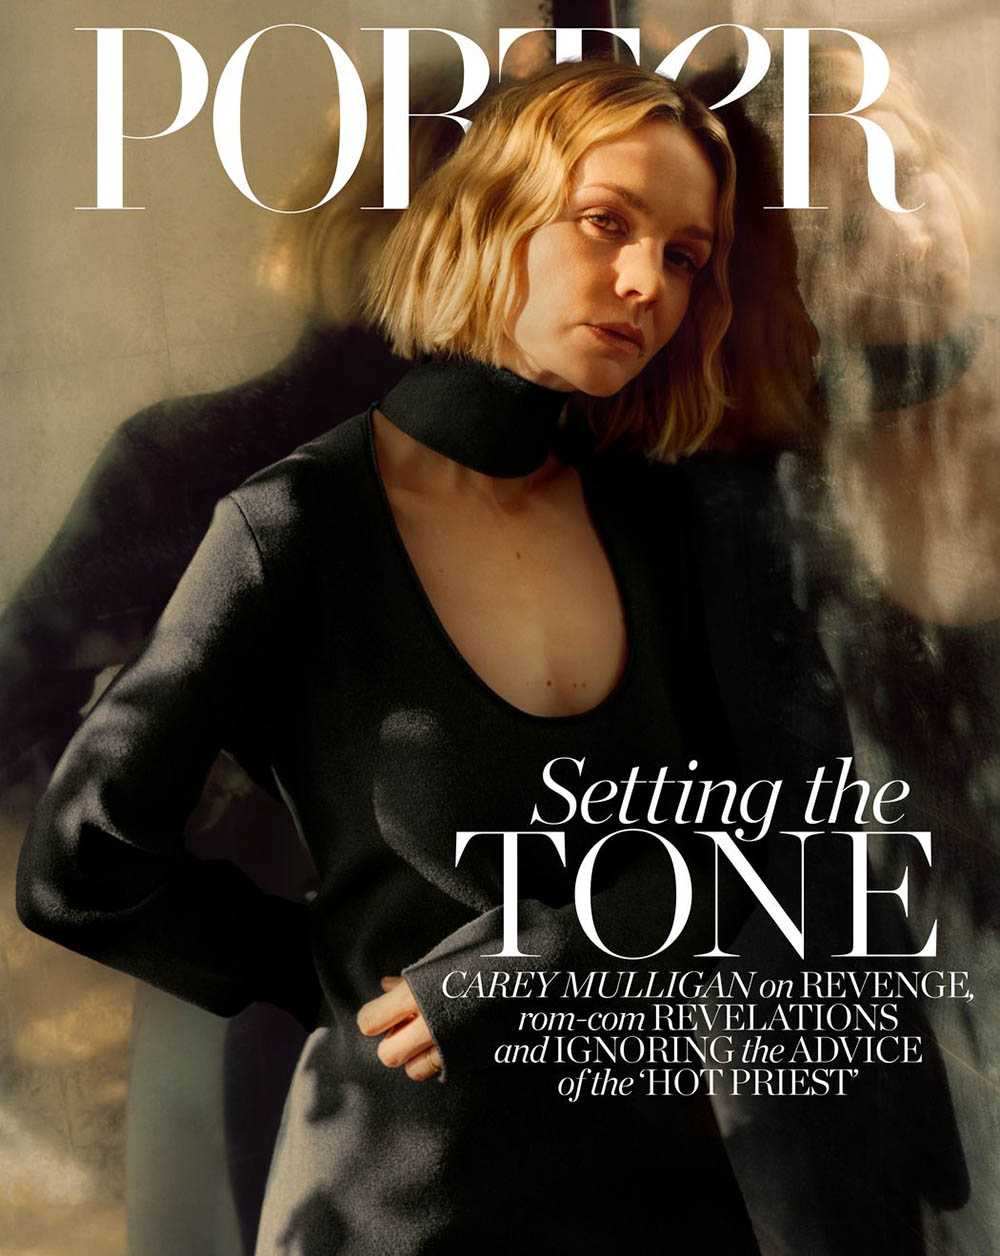 Carey Mulligan covers Porter Magazine April 6th, 2020 by Rory Payne